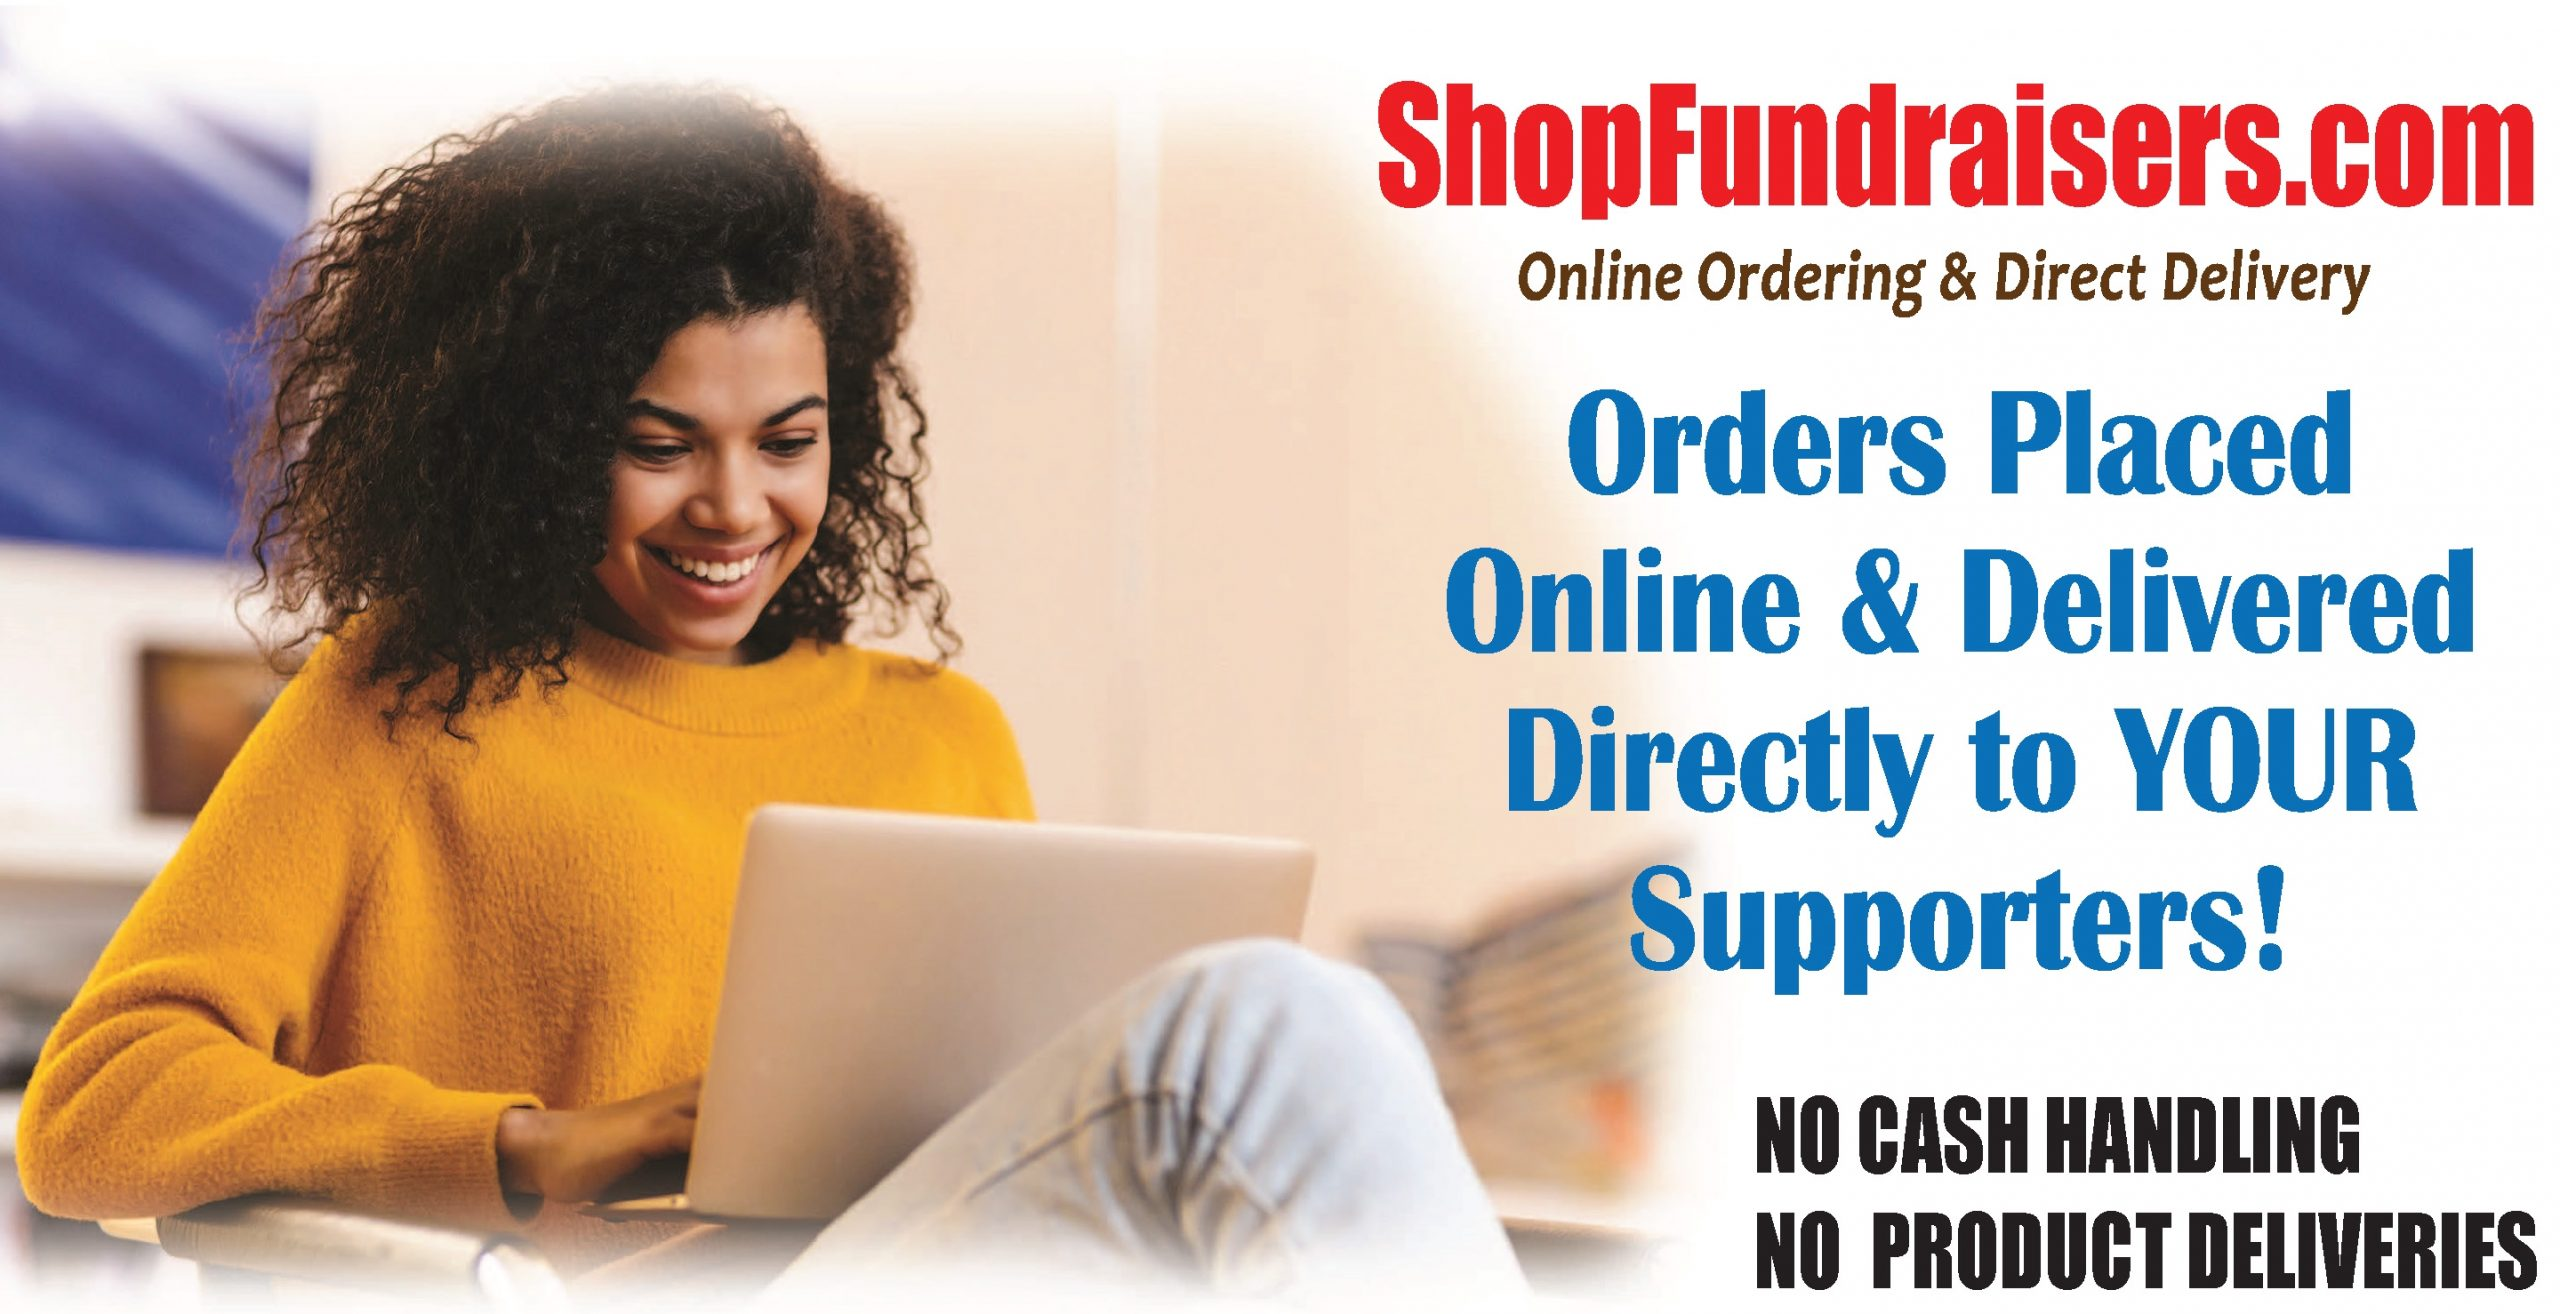 Shop Fundraisers Orders Placed Online